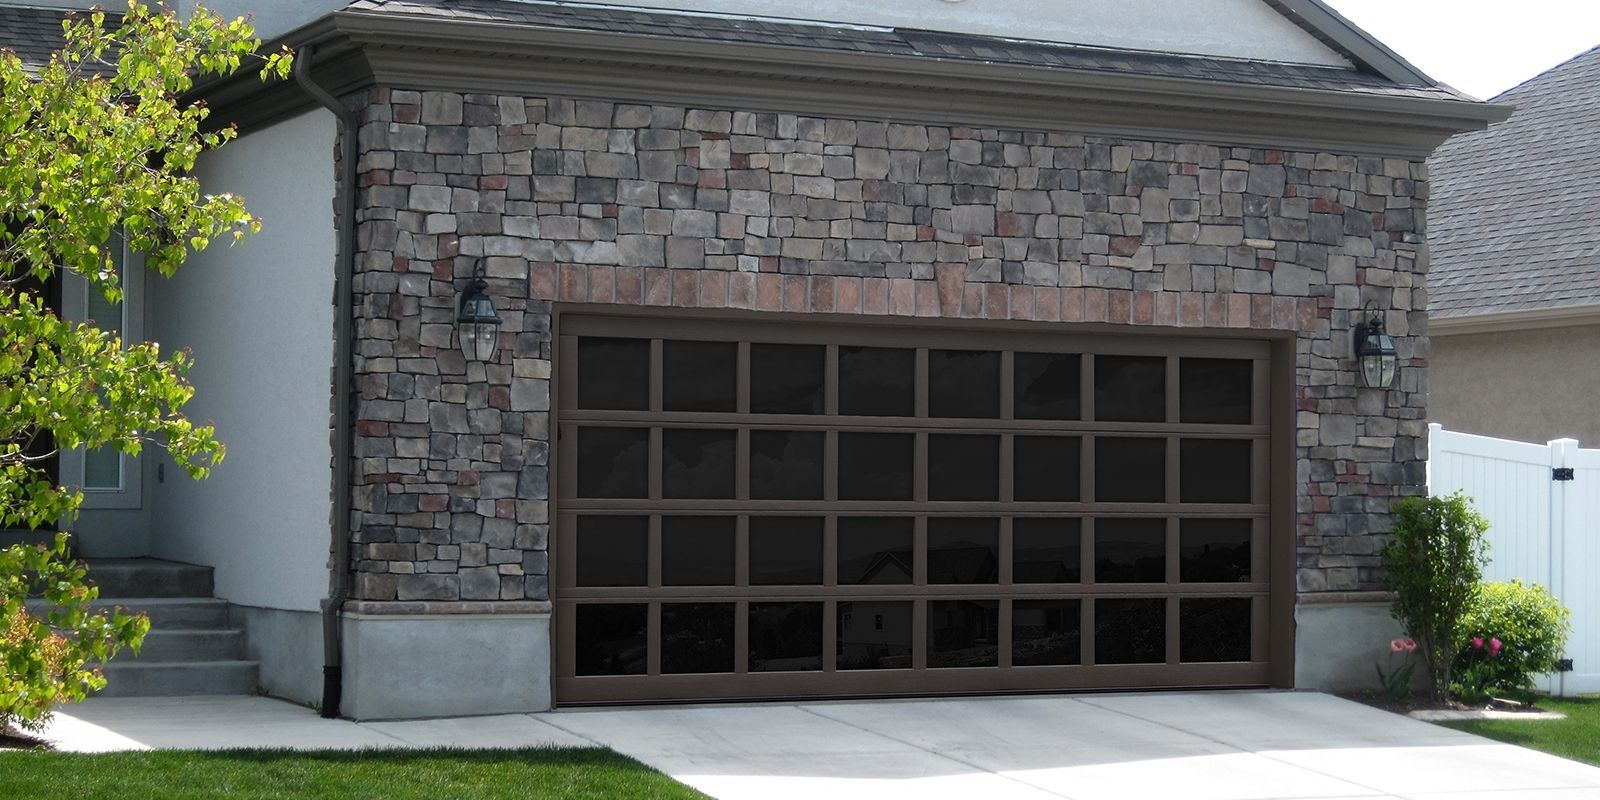 Carriage garage doors without windows  Salt Lake City Garage Doors  voteno  Pinterest